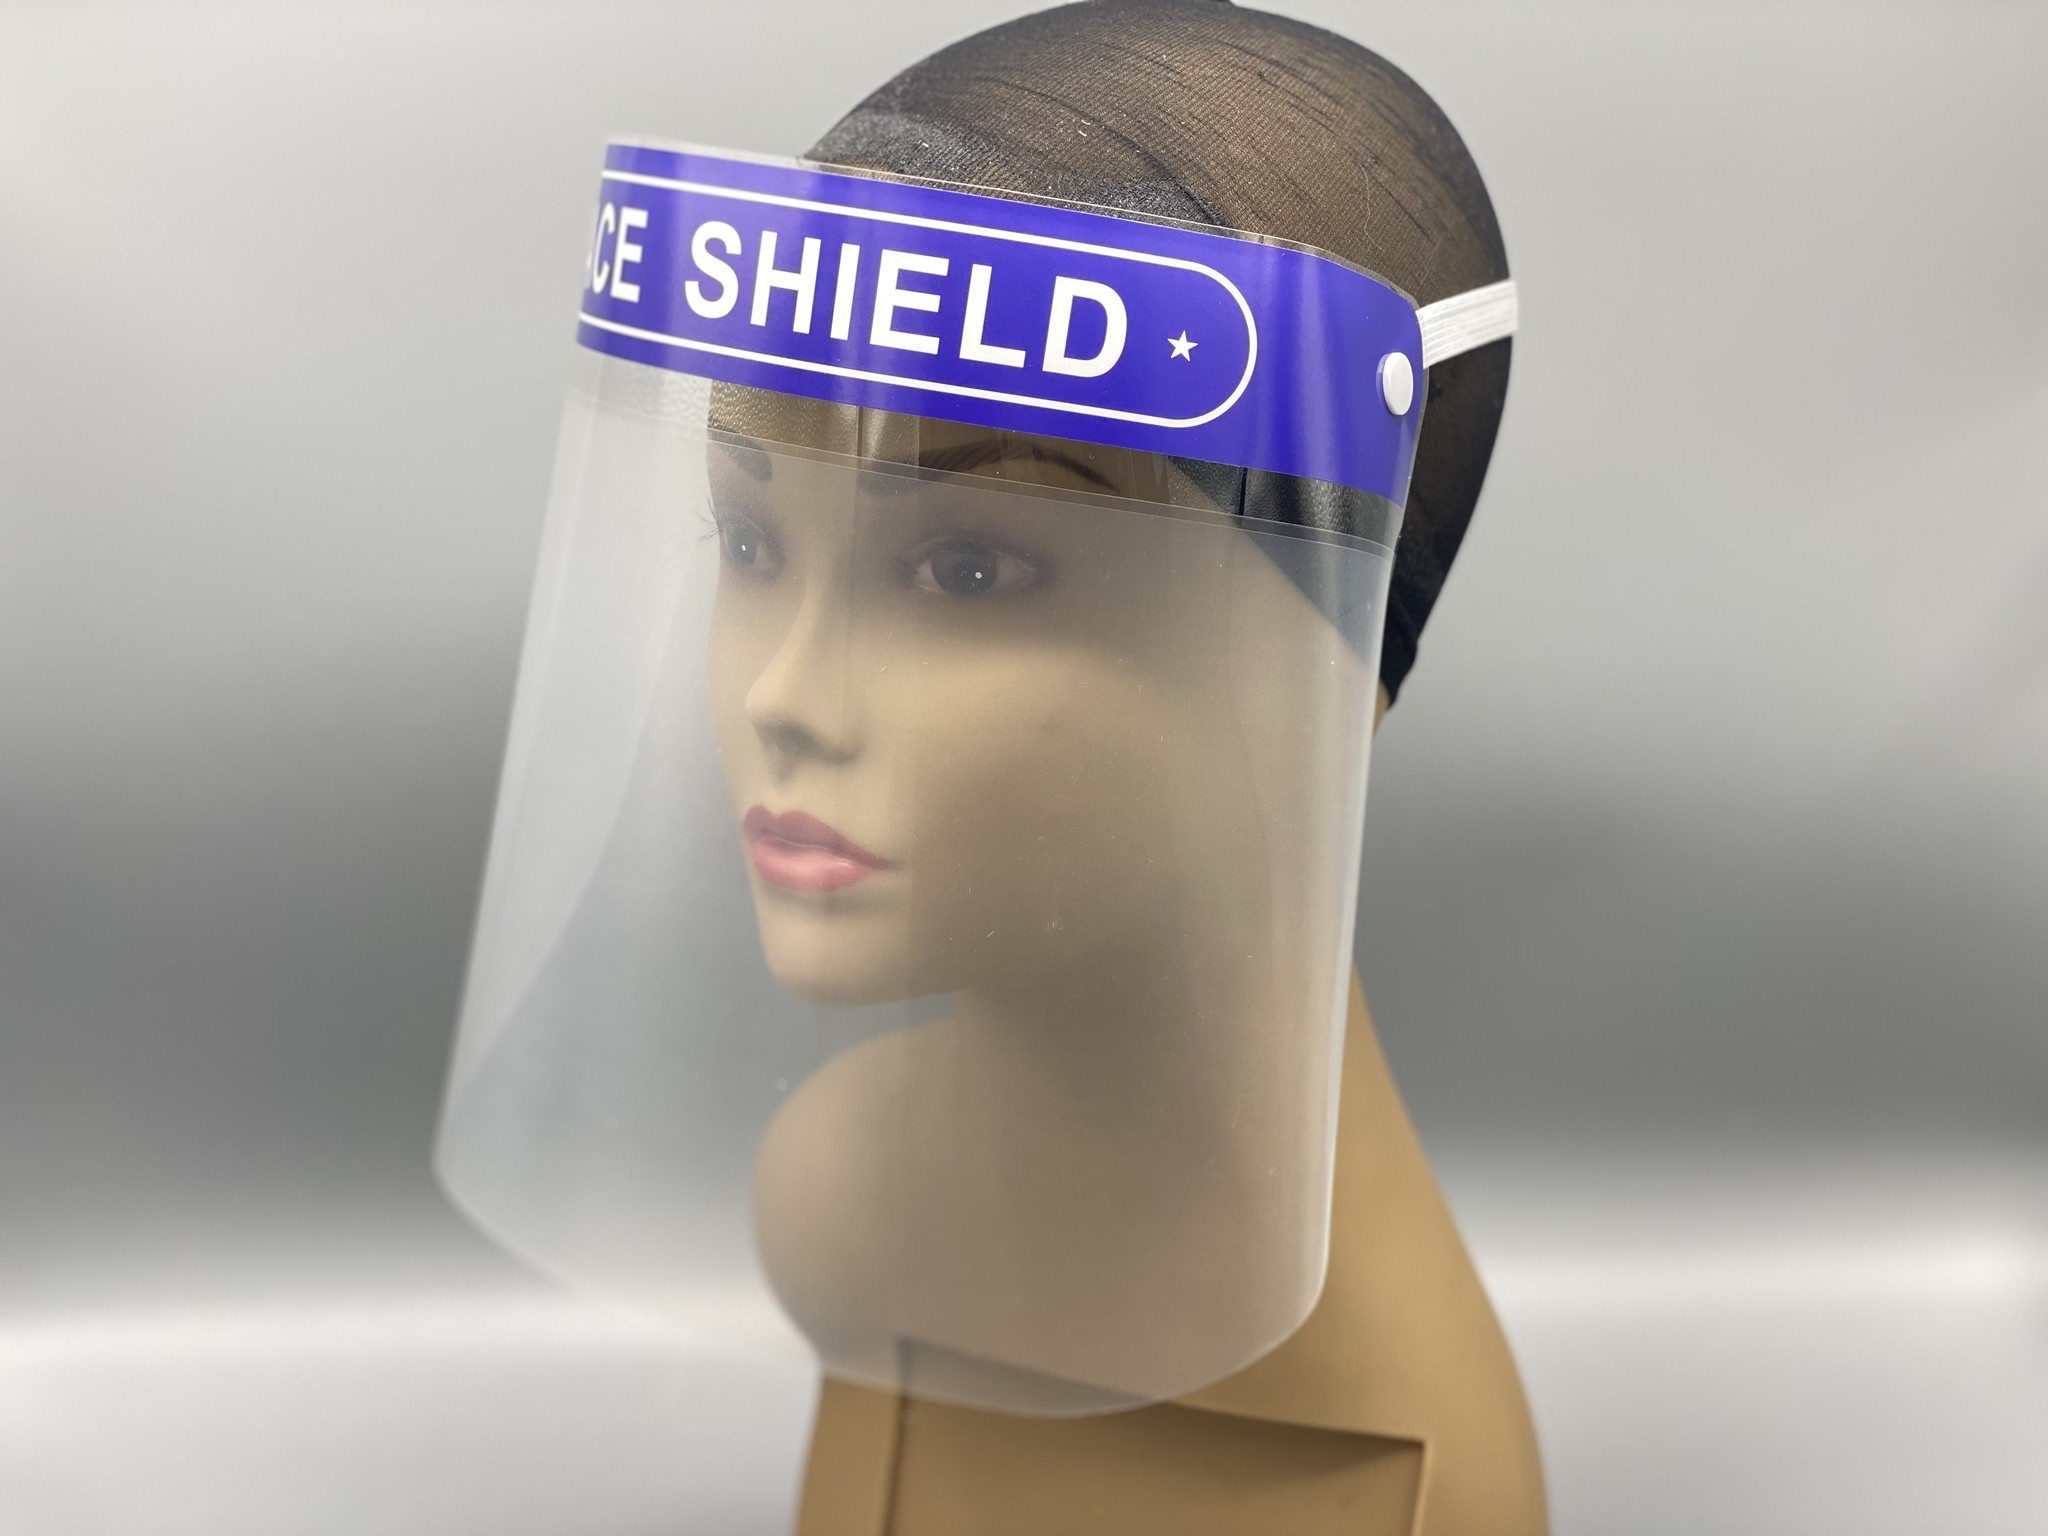 FaceShield / Face Mask / Face Shield / Splash Mask